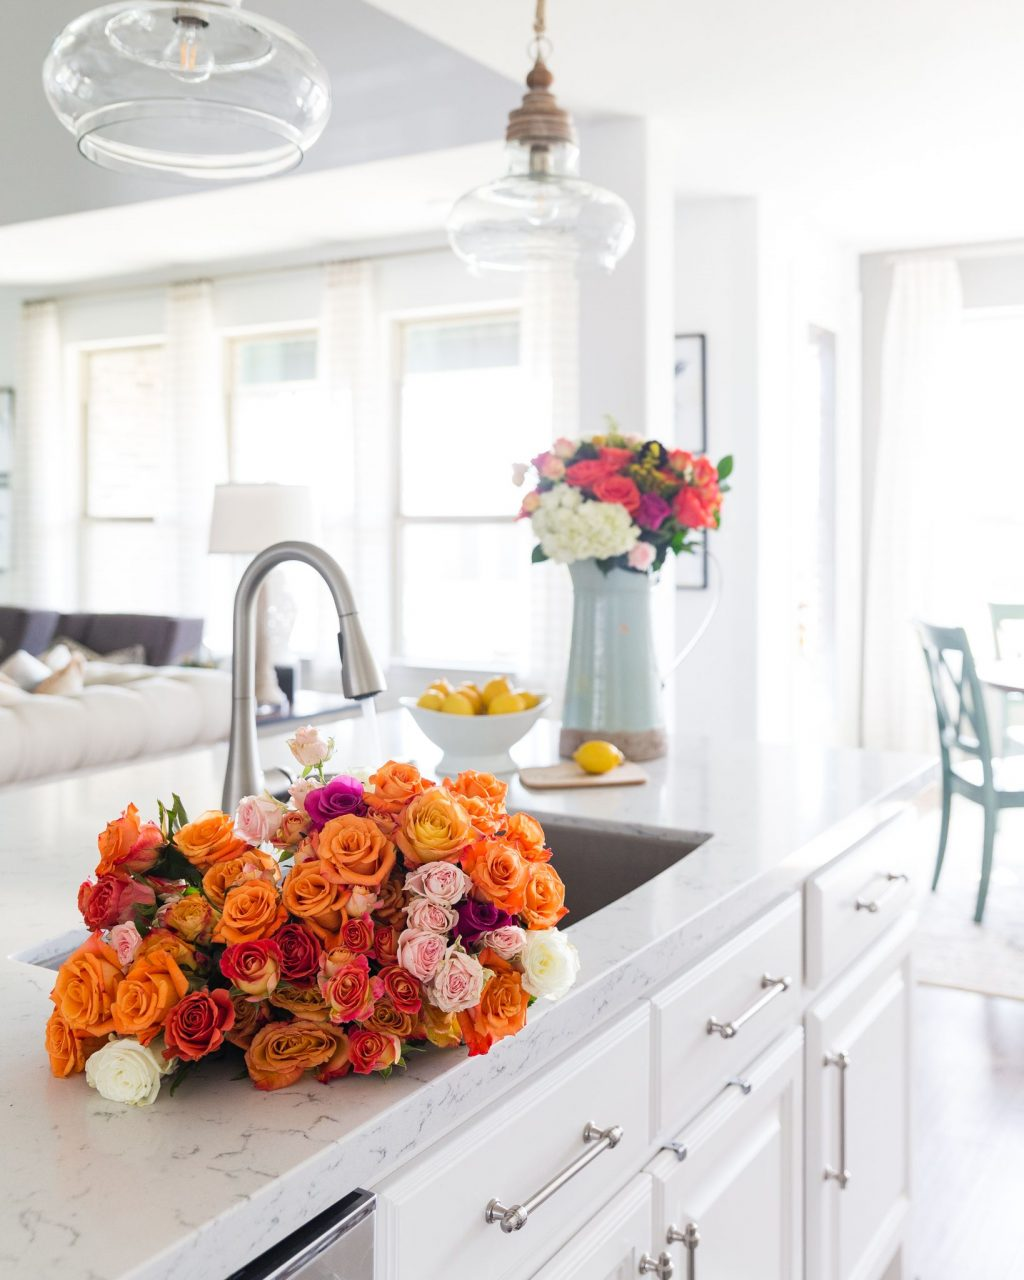 White kitchen with colorful flowers on the counter